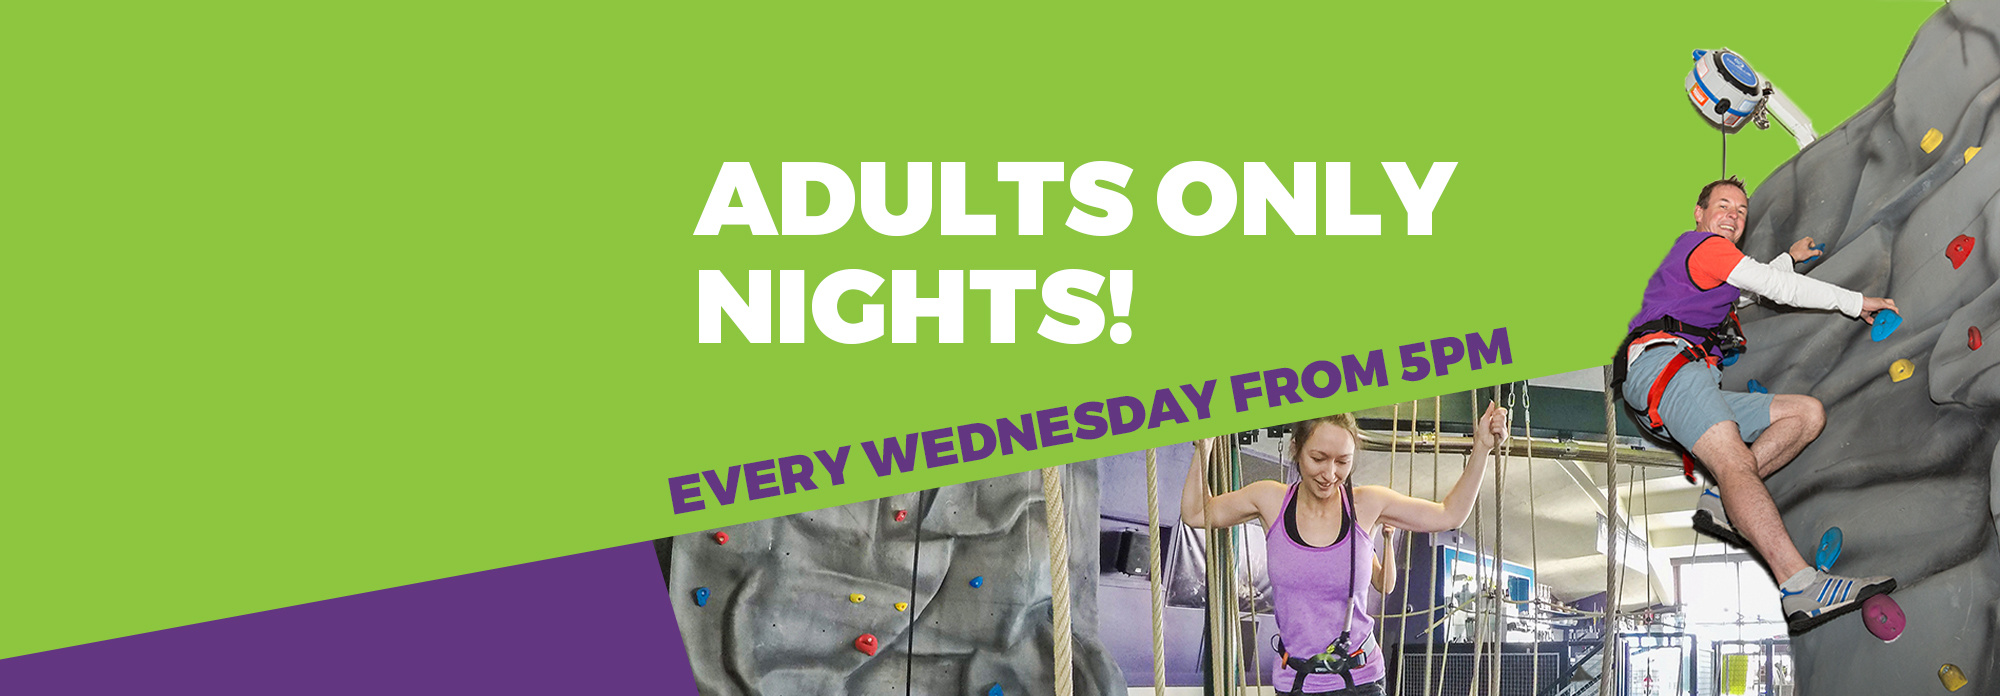 Adults Night Only Web Banner3